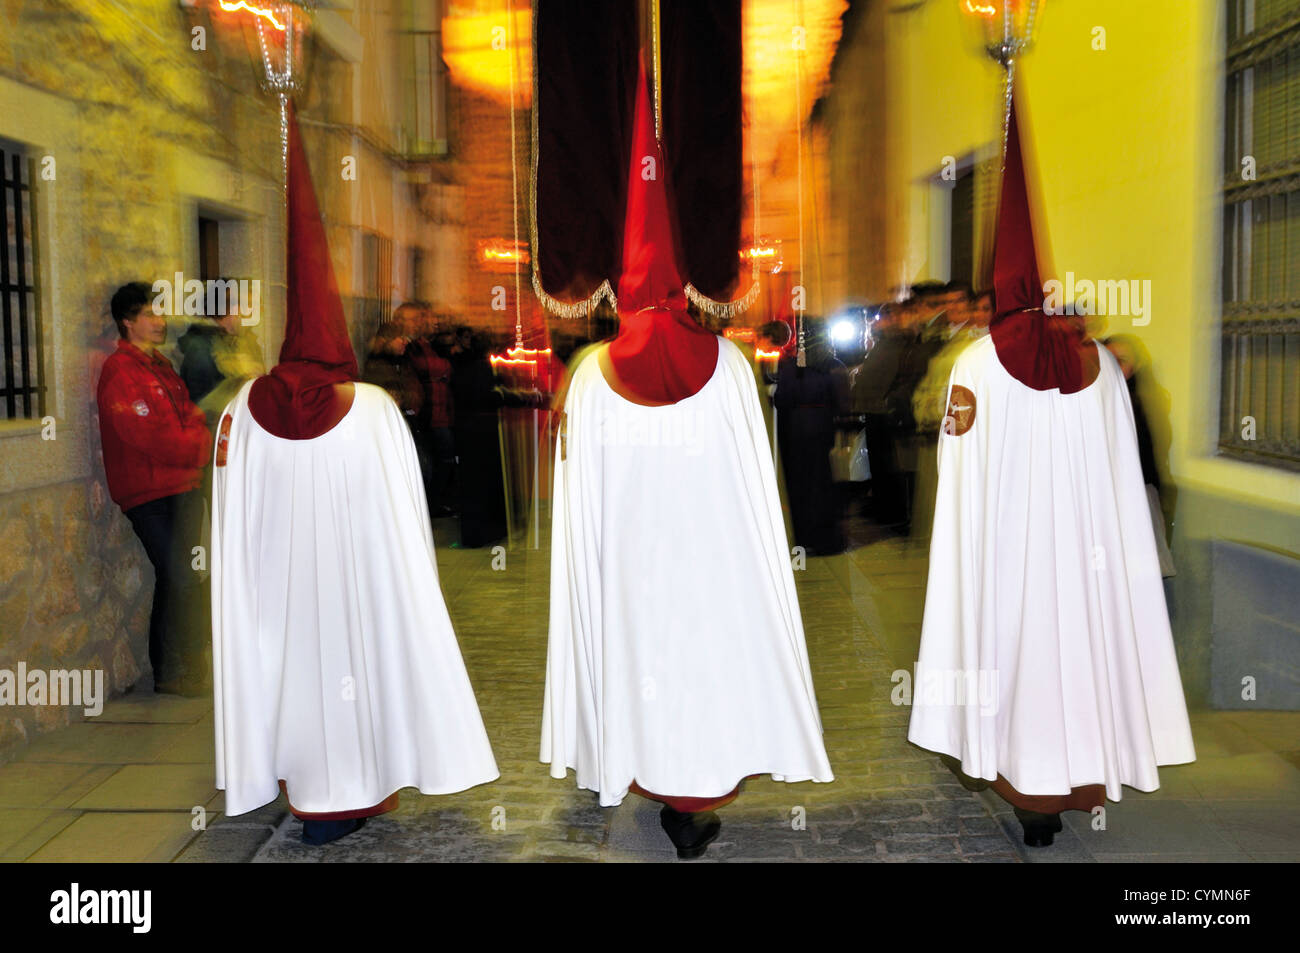 Spain: Nocturnal Easter procession in Cáceres - Stock Image